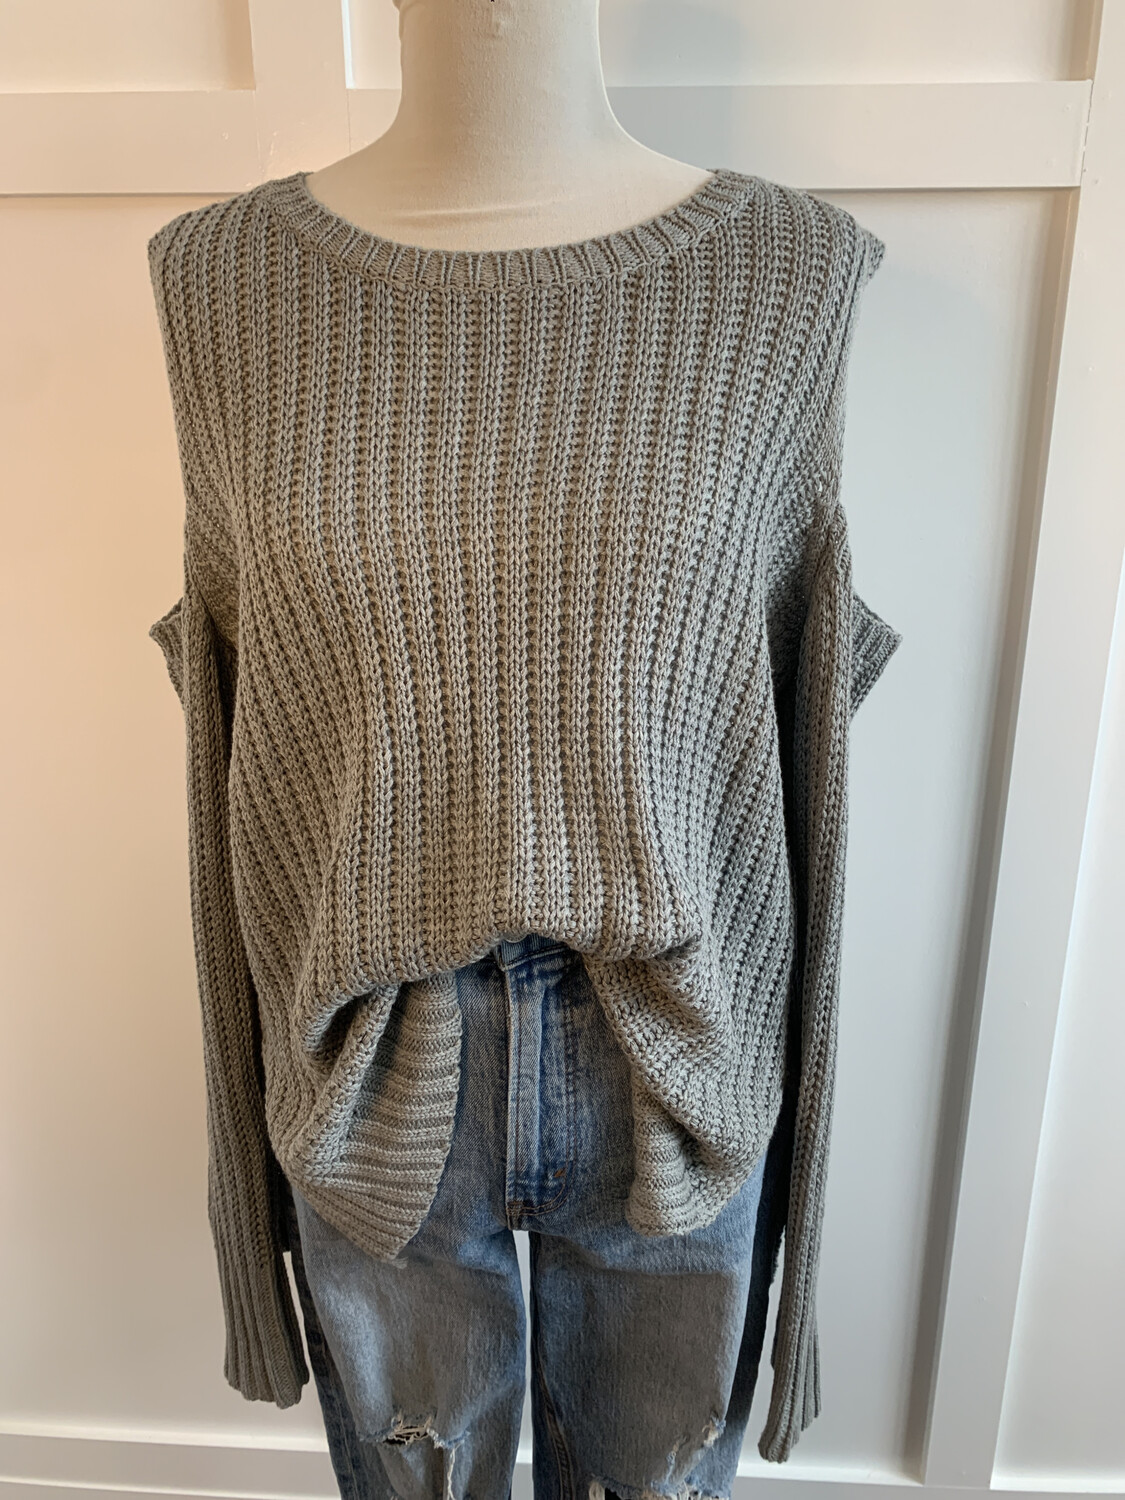 Judy Blue Grey Cold Shoulder Sweater - M